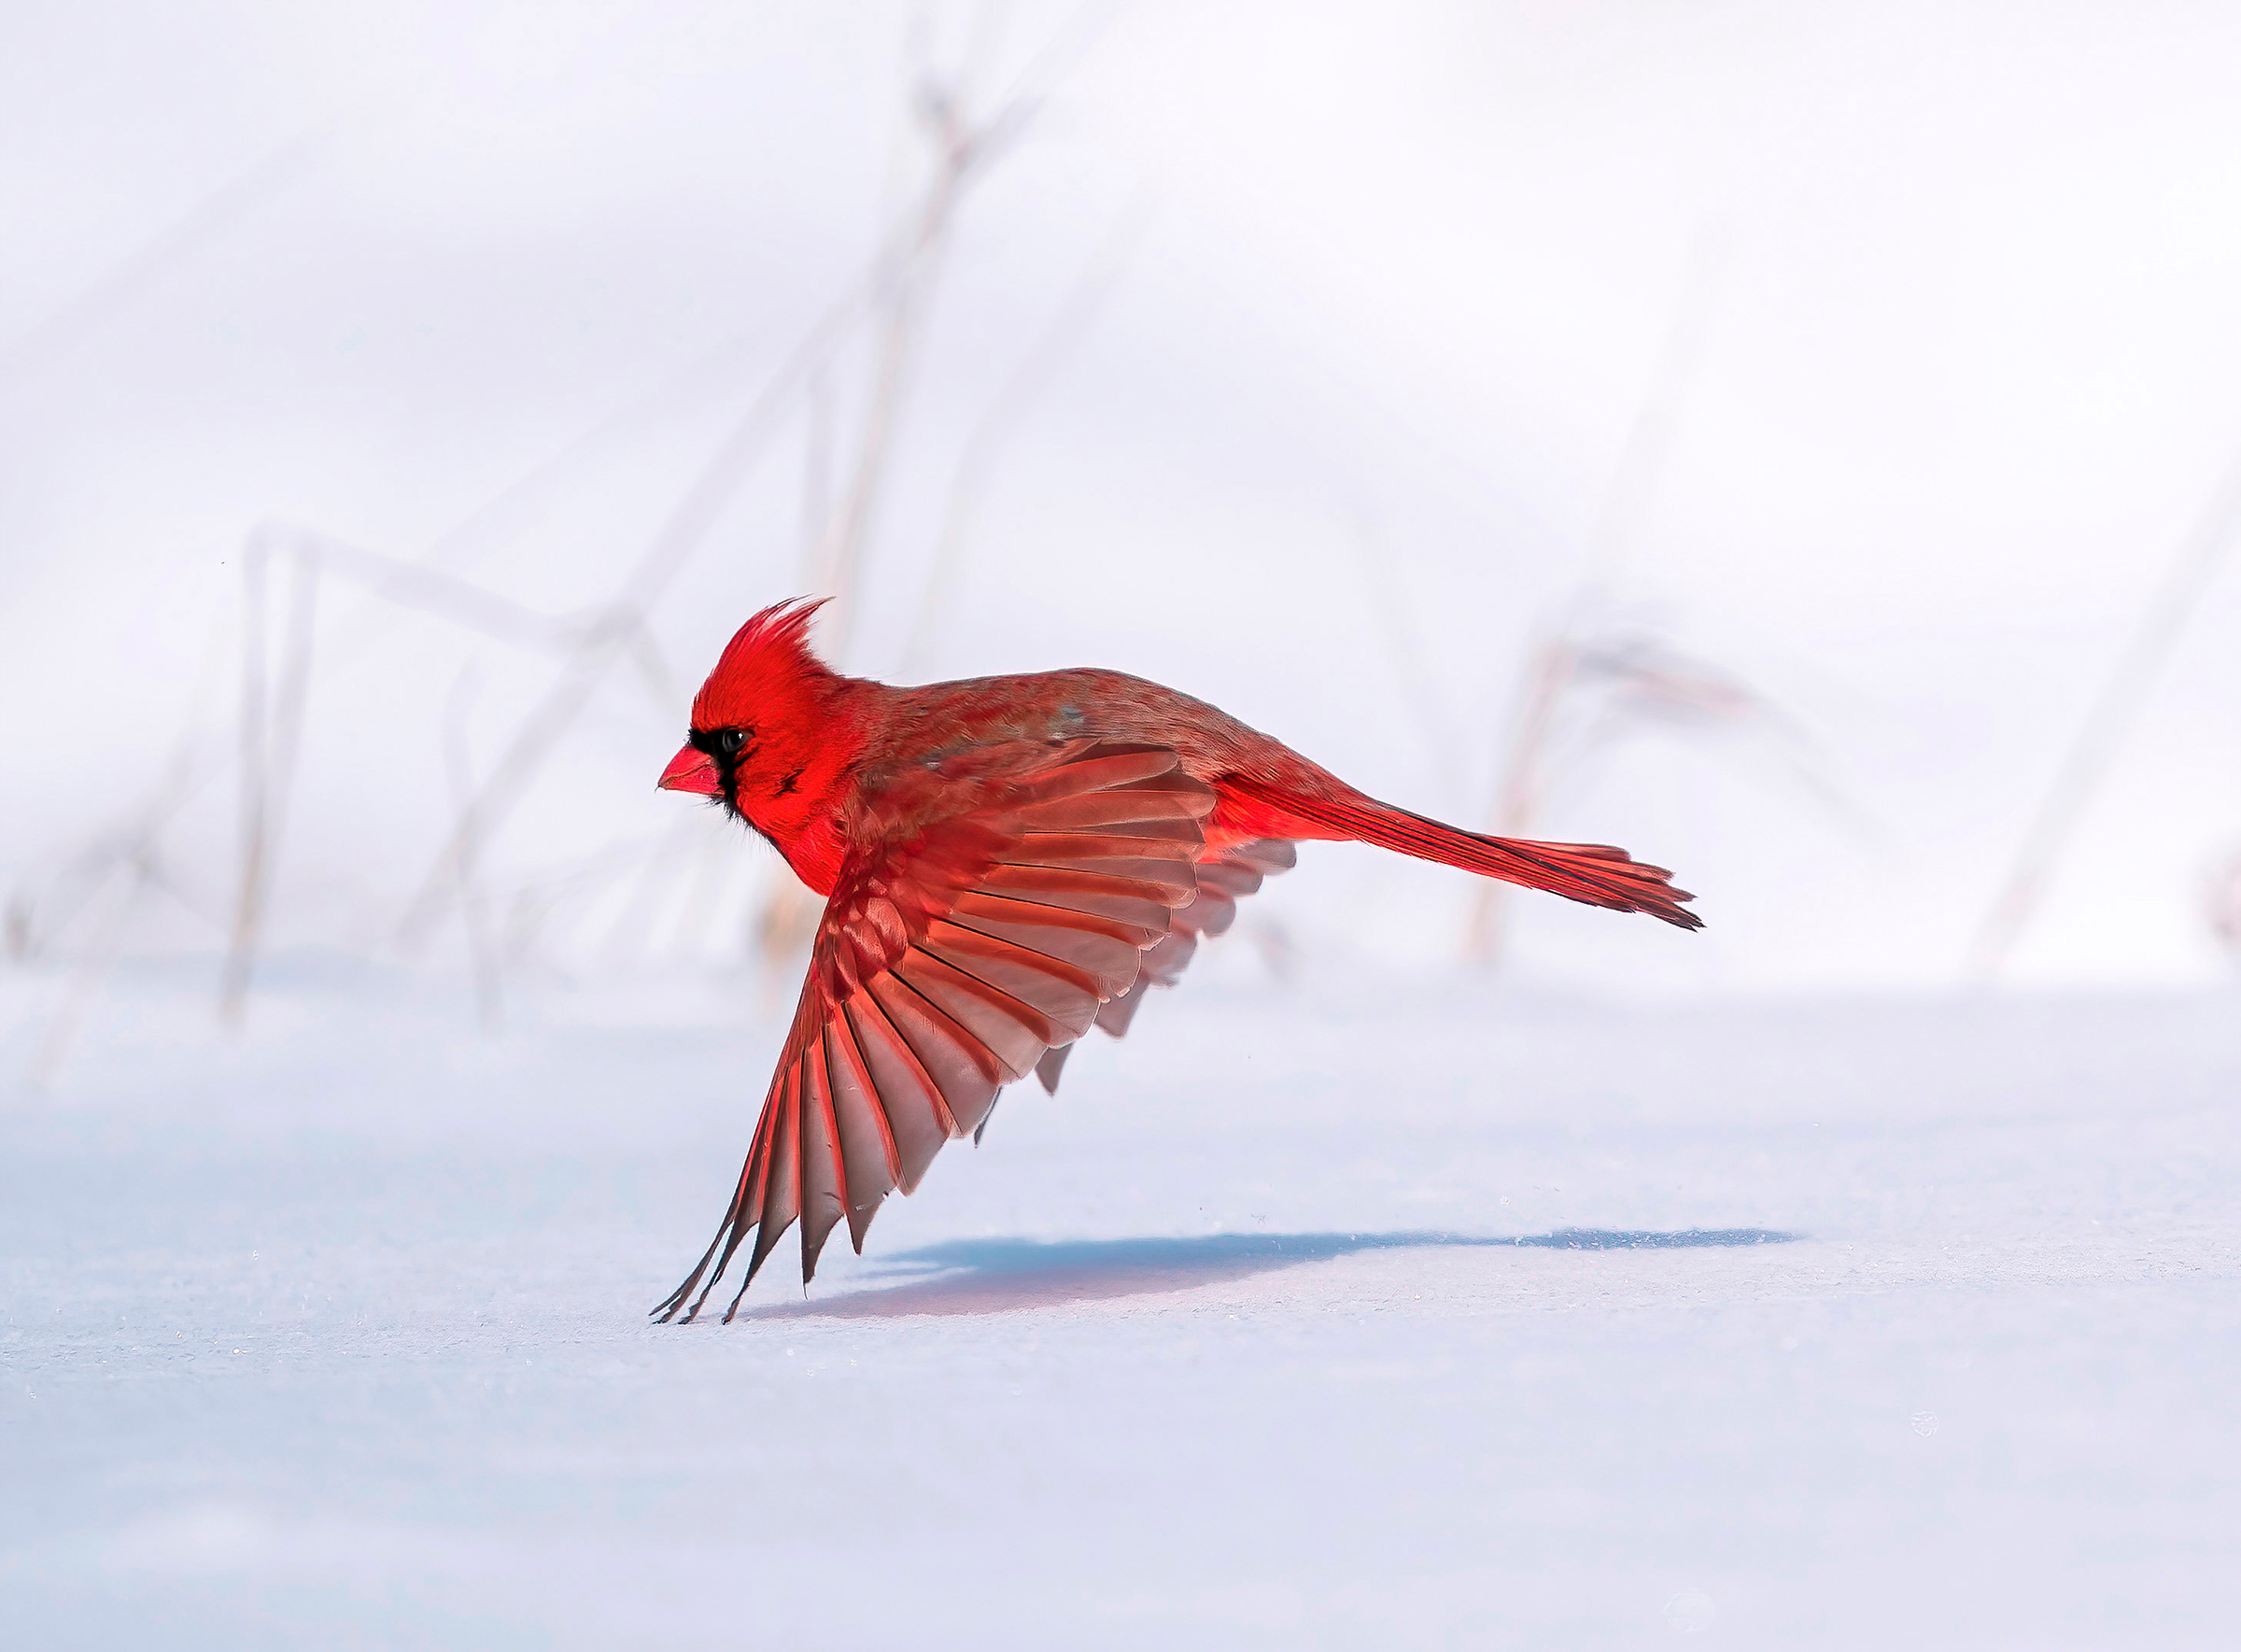 A red male Northern Cardinal seems to float above the snowy ground, the crest feathers on its head blown backward in the wind as it flies in profile in front of gray plant stalks. The bird's three wing feathers touch the white carpet of snow, its shadow connecting below.